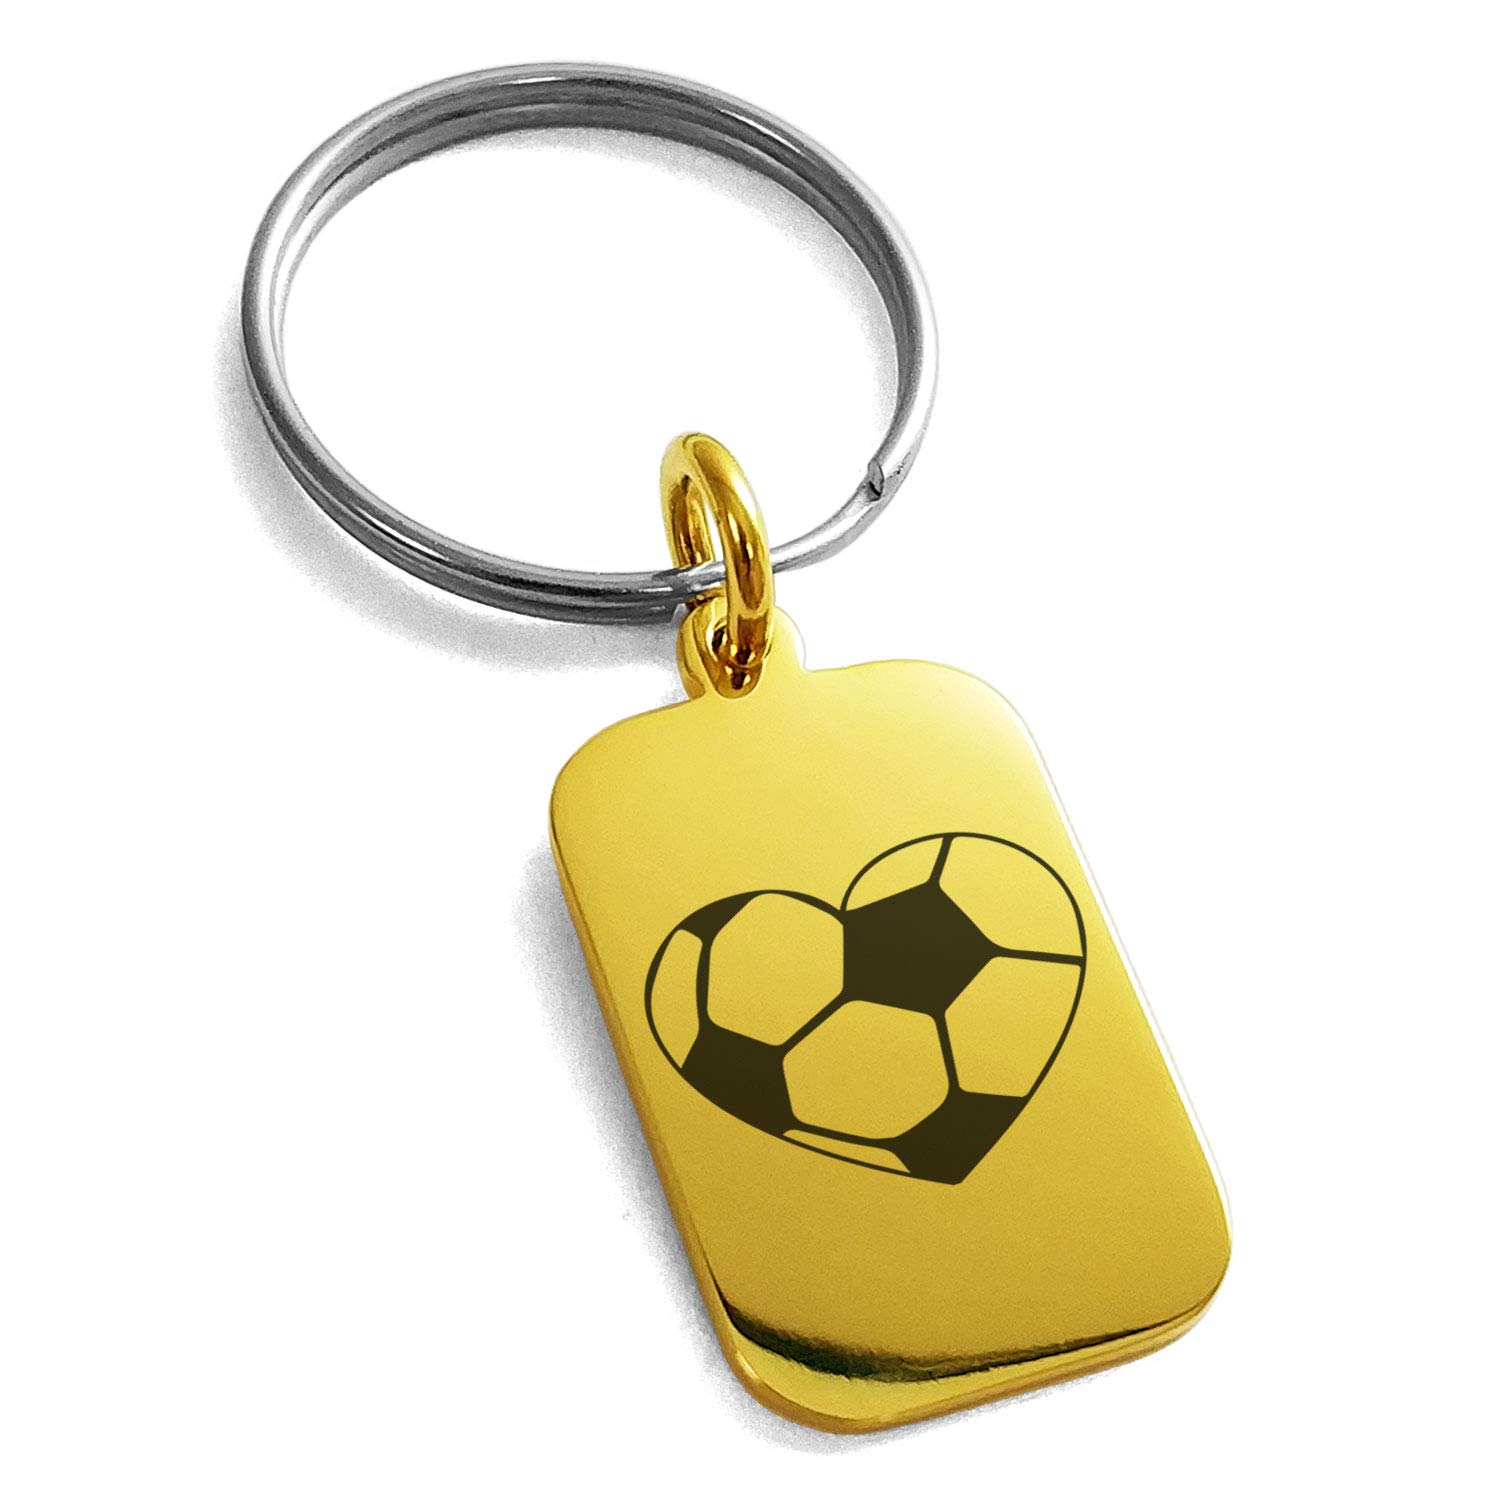 Tioneer Gold Plated Stainless Steel Love Soccer Heart Engraved Small Rectangle Dog Tag Charm Keychain Keyring